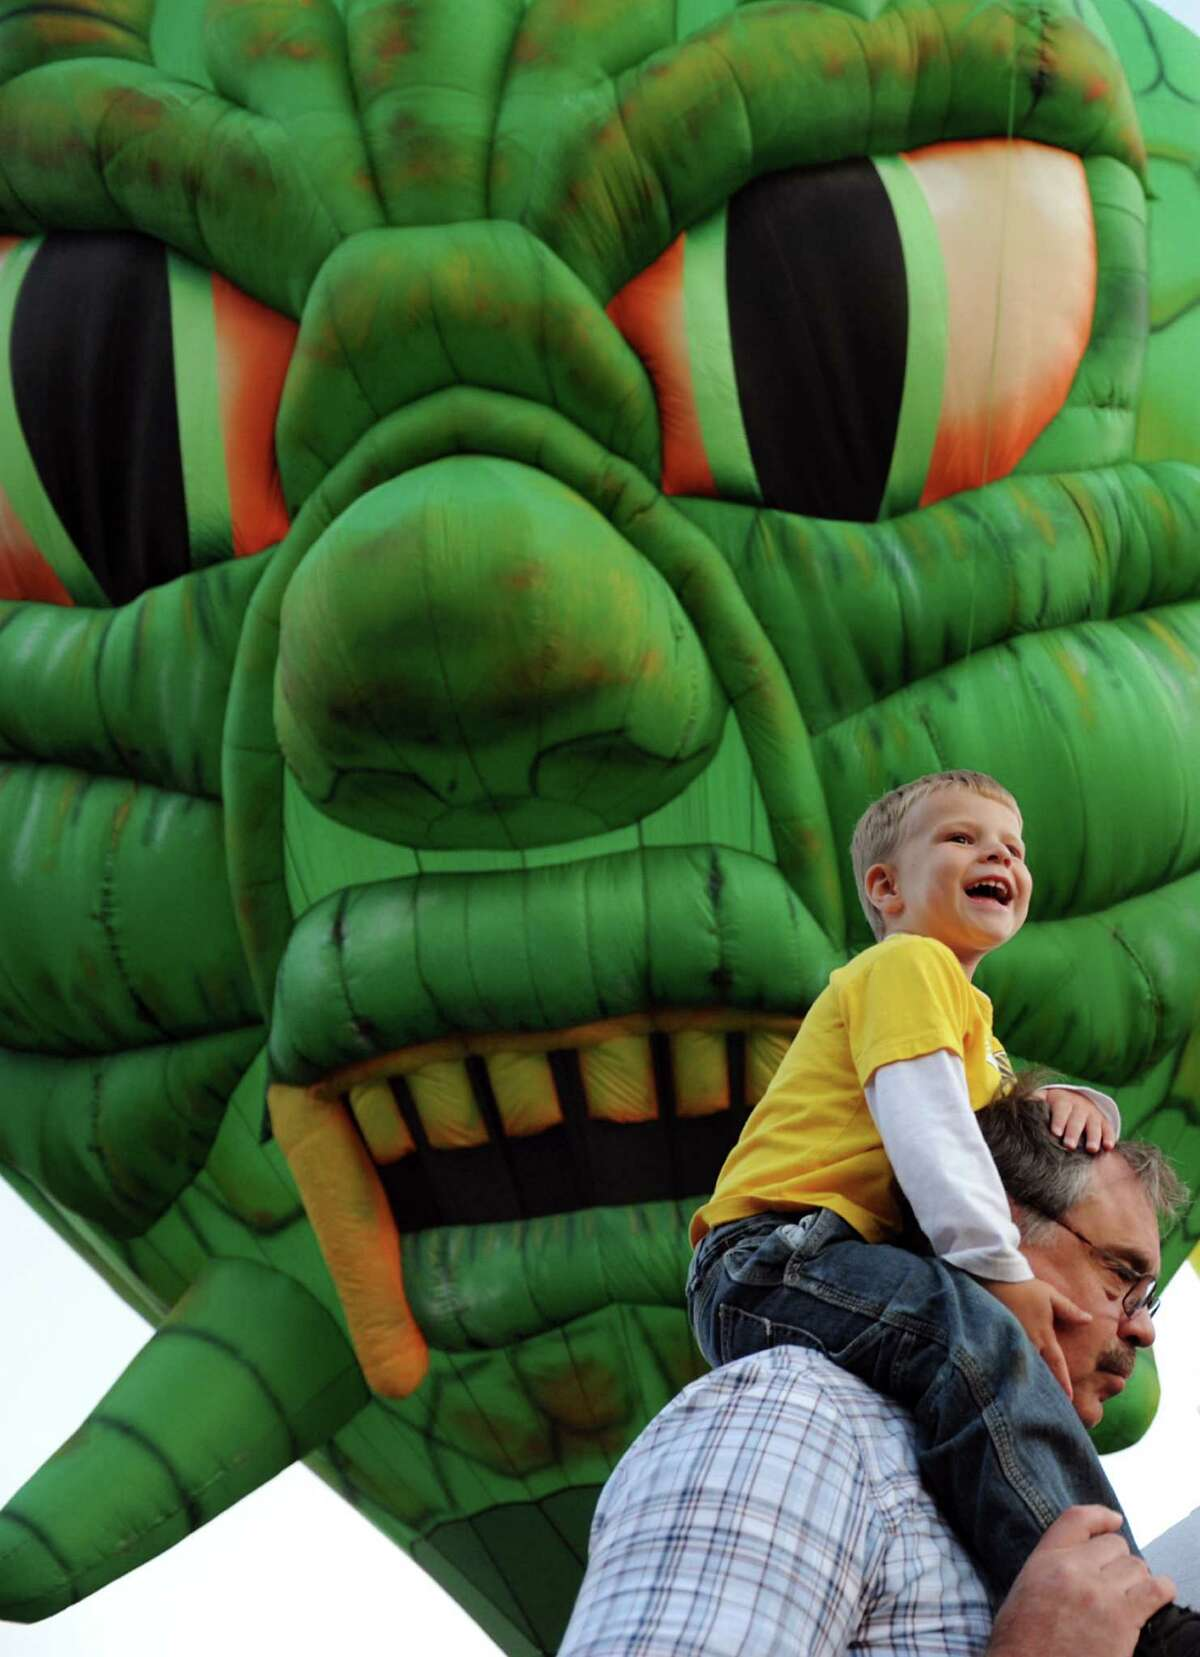 Braydon Matkowsky, 3, of Centerton, N.J. sits on the shoulders of his grandfather, Bill, during the Adirondack Balloon Festival on Thursday, Sept. 20, 2012, at Crandall Park in Glens Falls, N.Y. Bill Matkowsky, a balloon pilot, brought family to this year's festival even though he's taking time off from the activity. The festival continues through the weekend. (Cindy Schultz / Times Union)